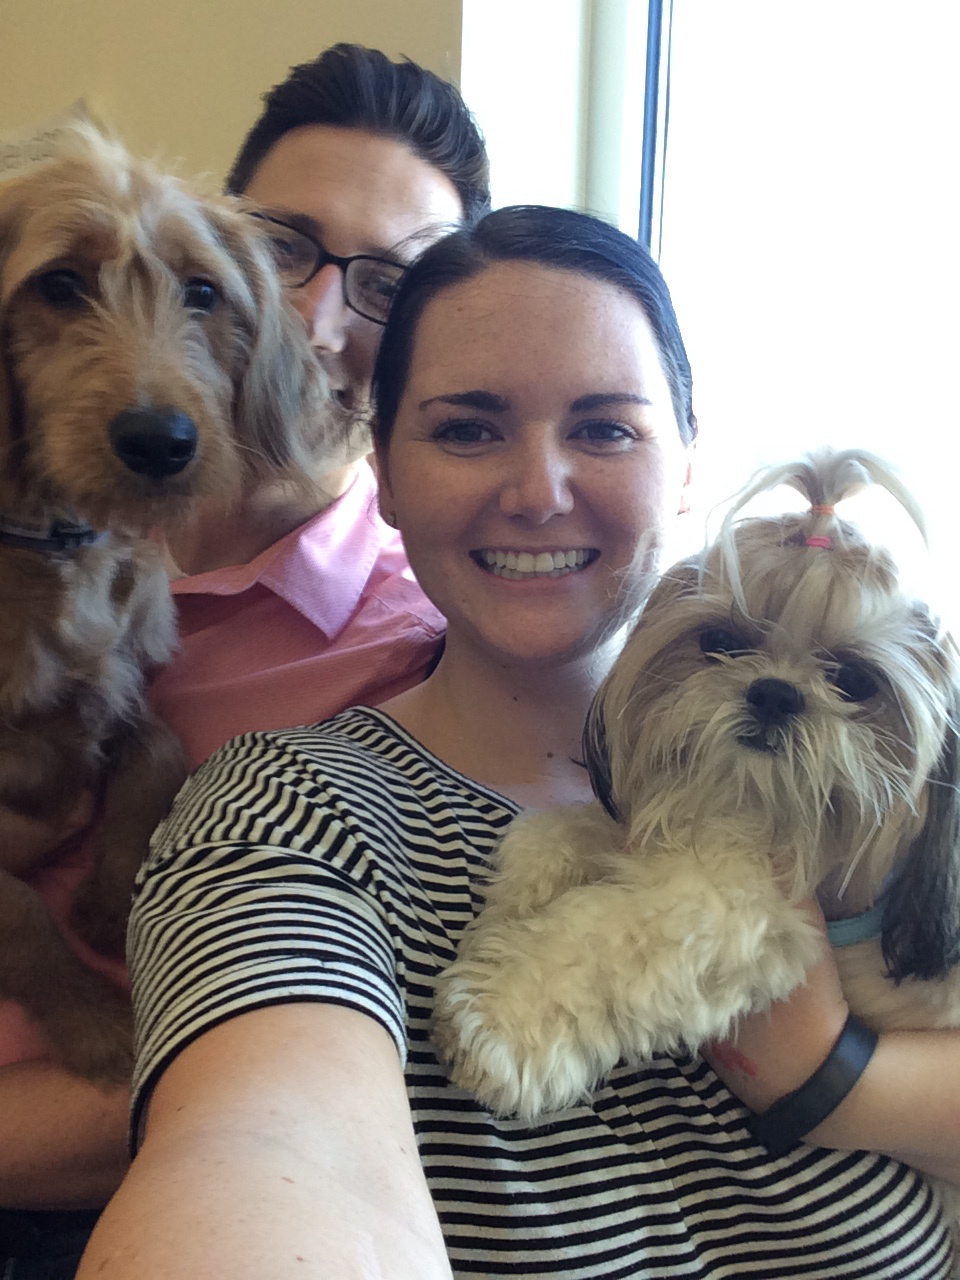 Bring your dog to work day! August 27, 2015485